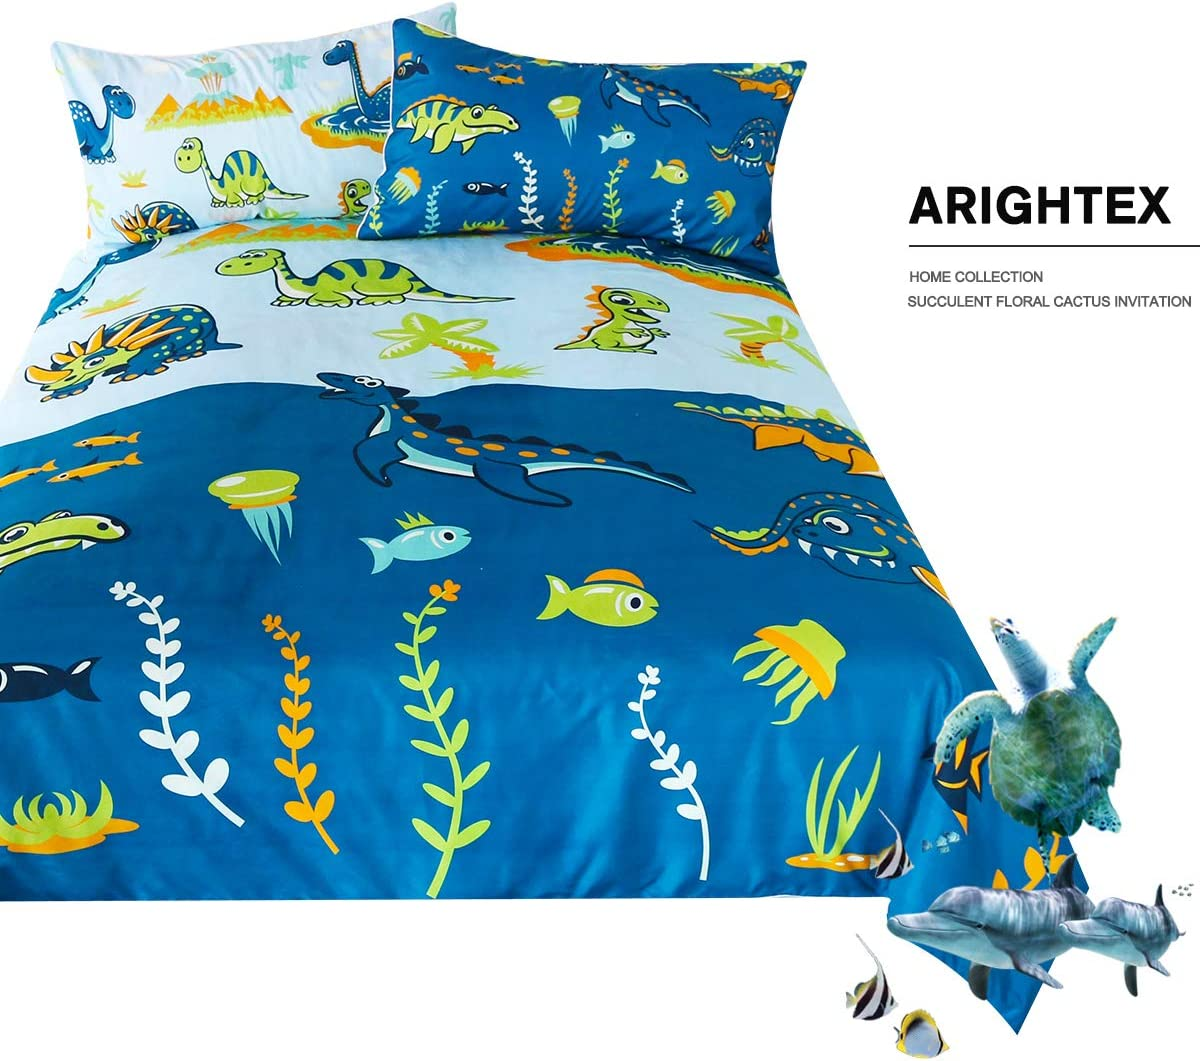 ARIGHTEX Dinosaur Print Bedding for Full Size Bed Boys Cute Ancient Animal Duvet Cover Colorful Dinosaurs 3 Pieces Kids Cartoon Comforter Cover Set